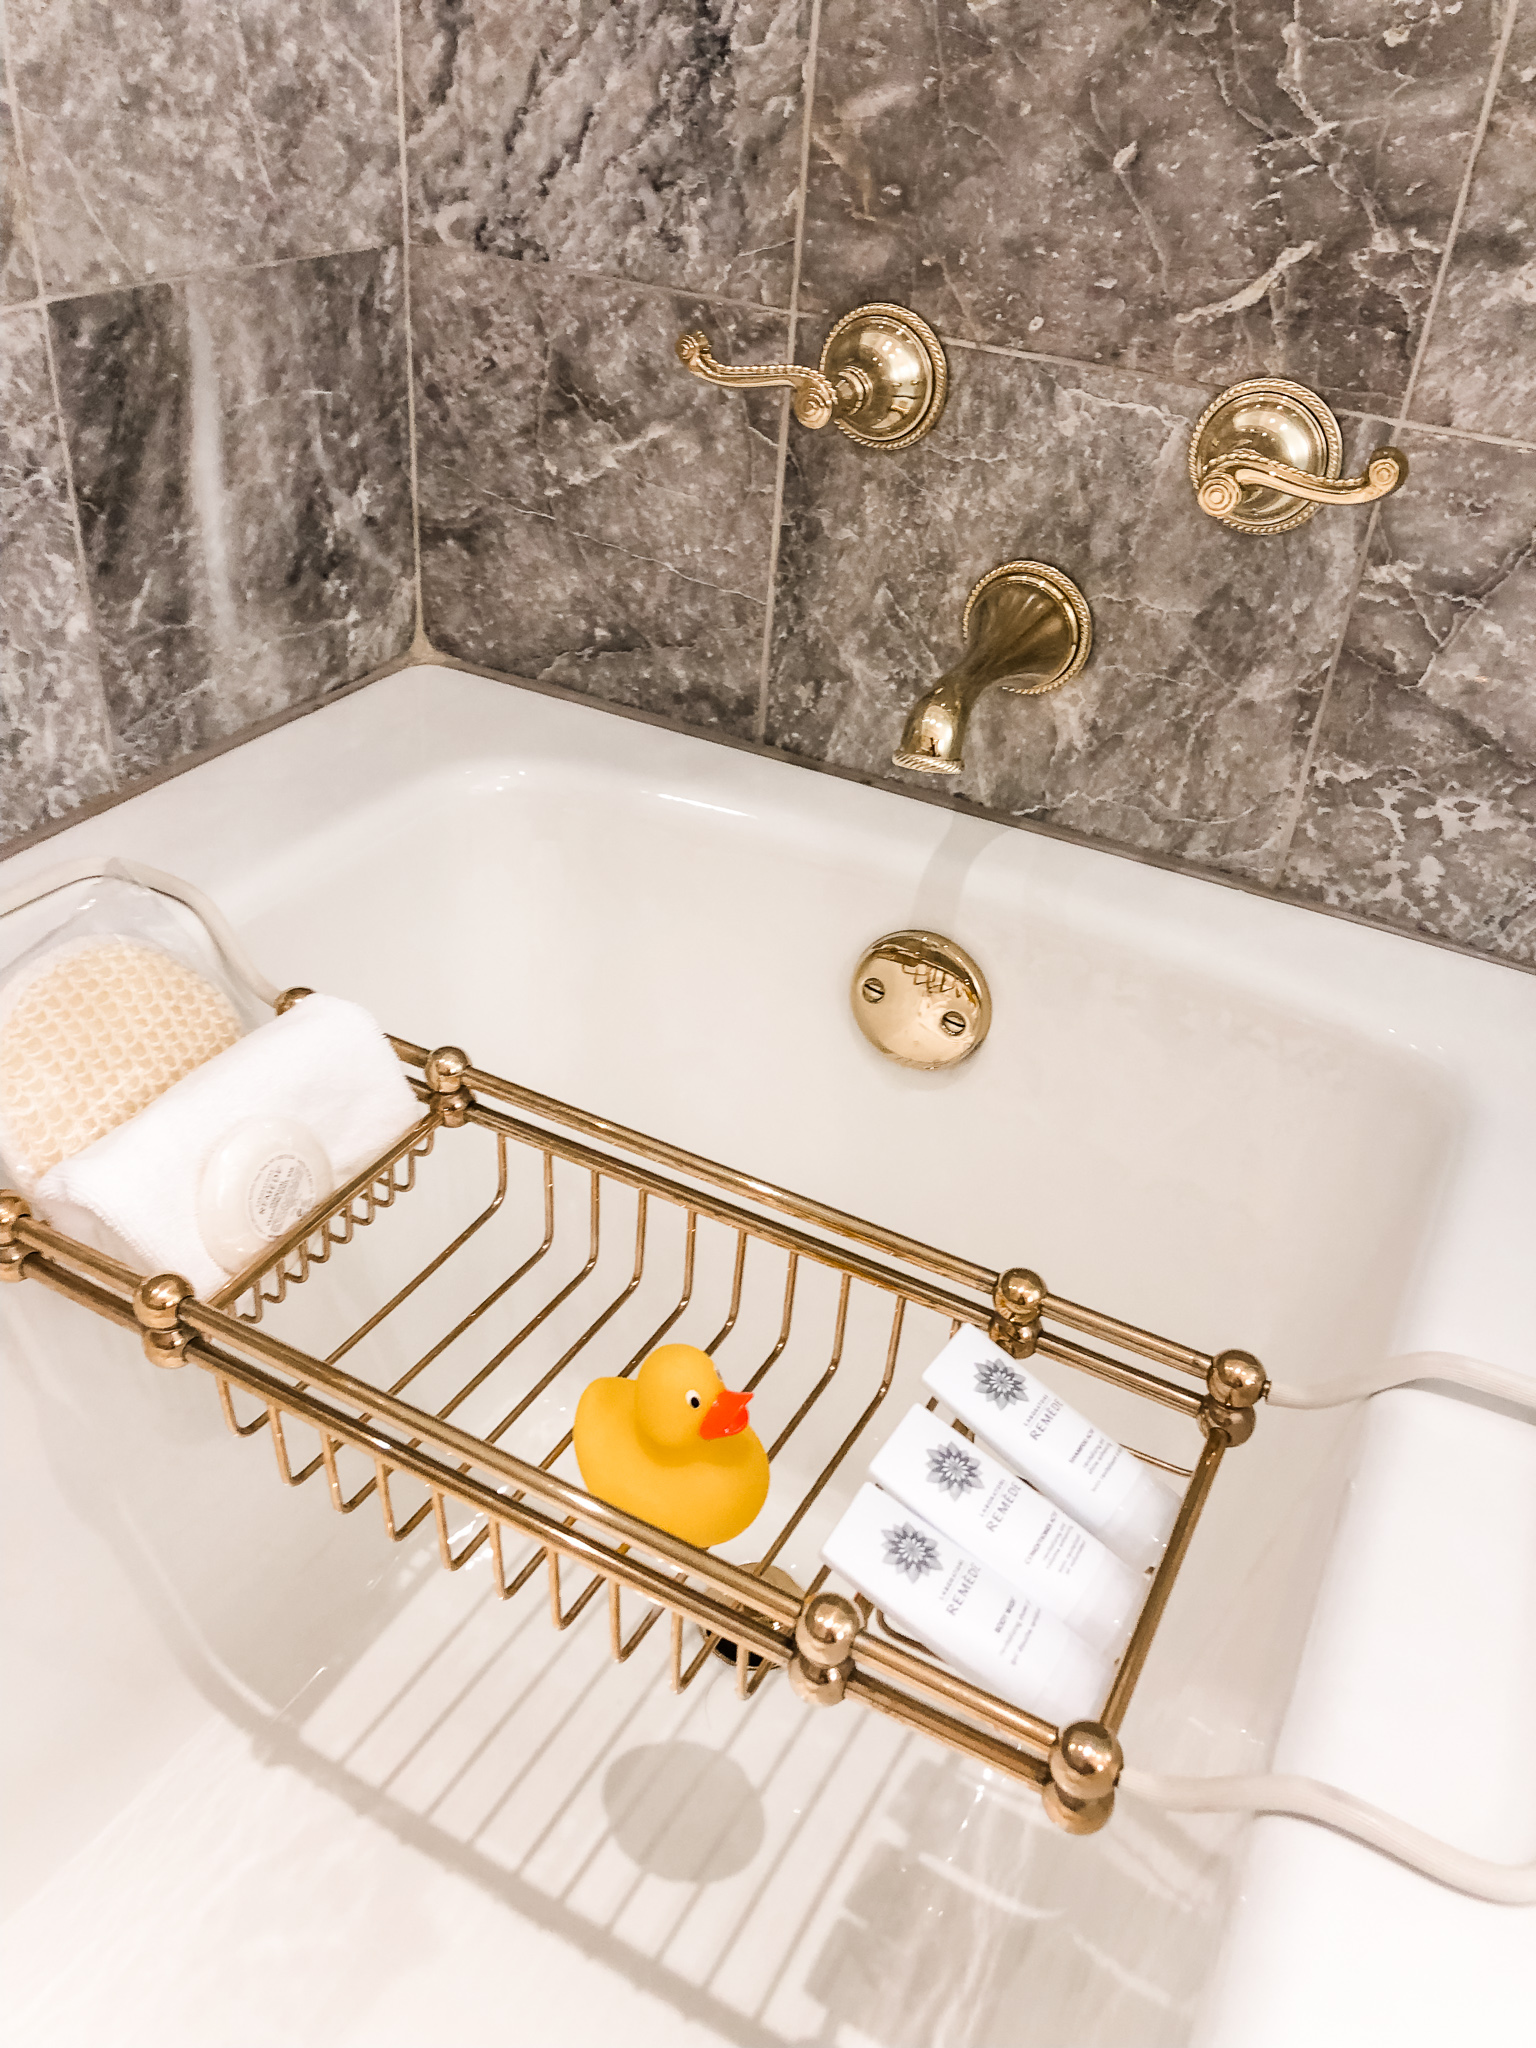 Our butler procured the baby 2 rubber duckies for bathtime